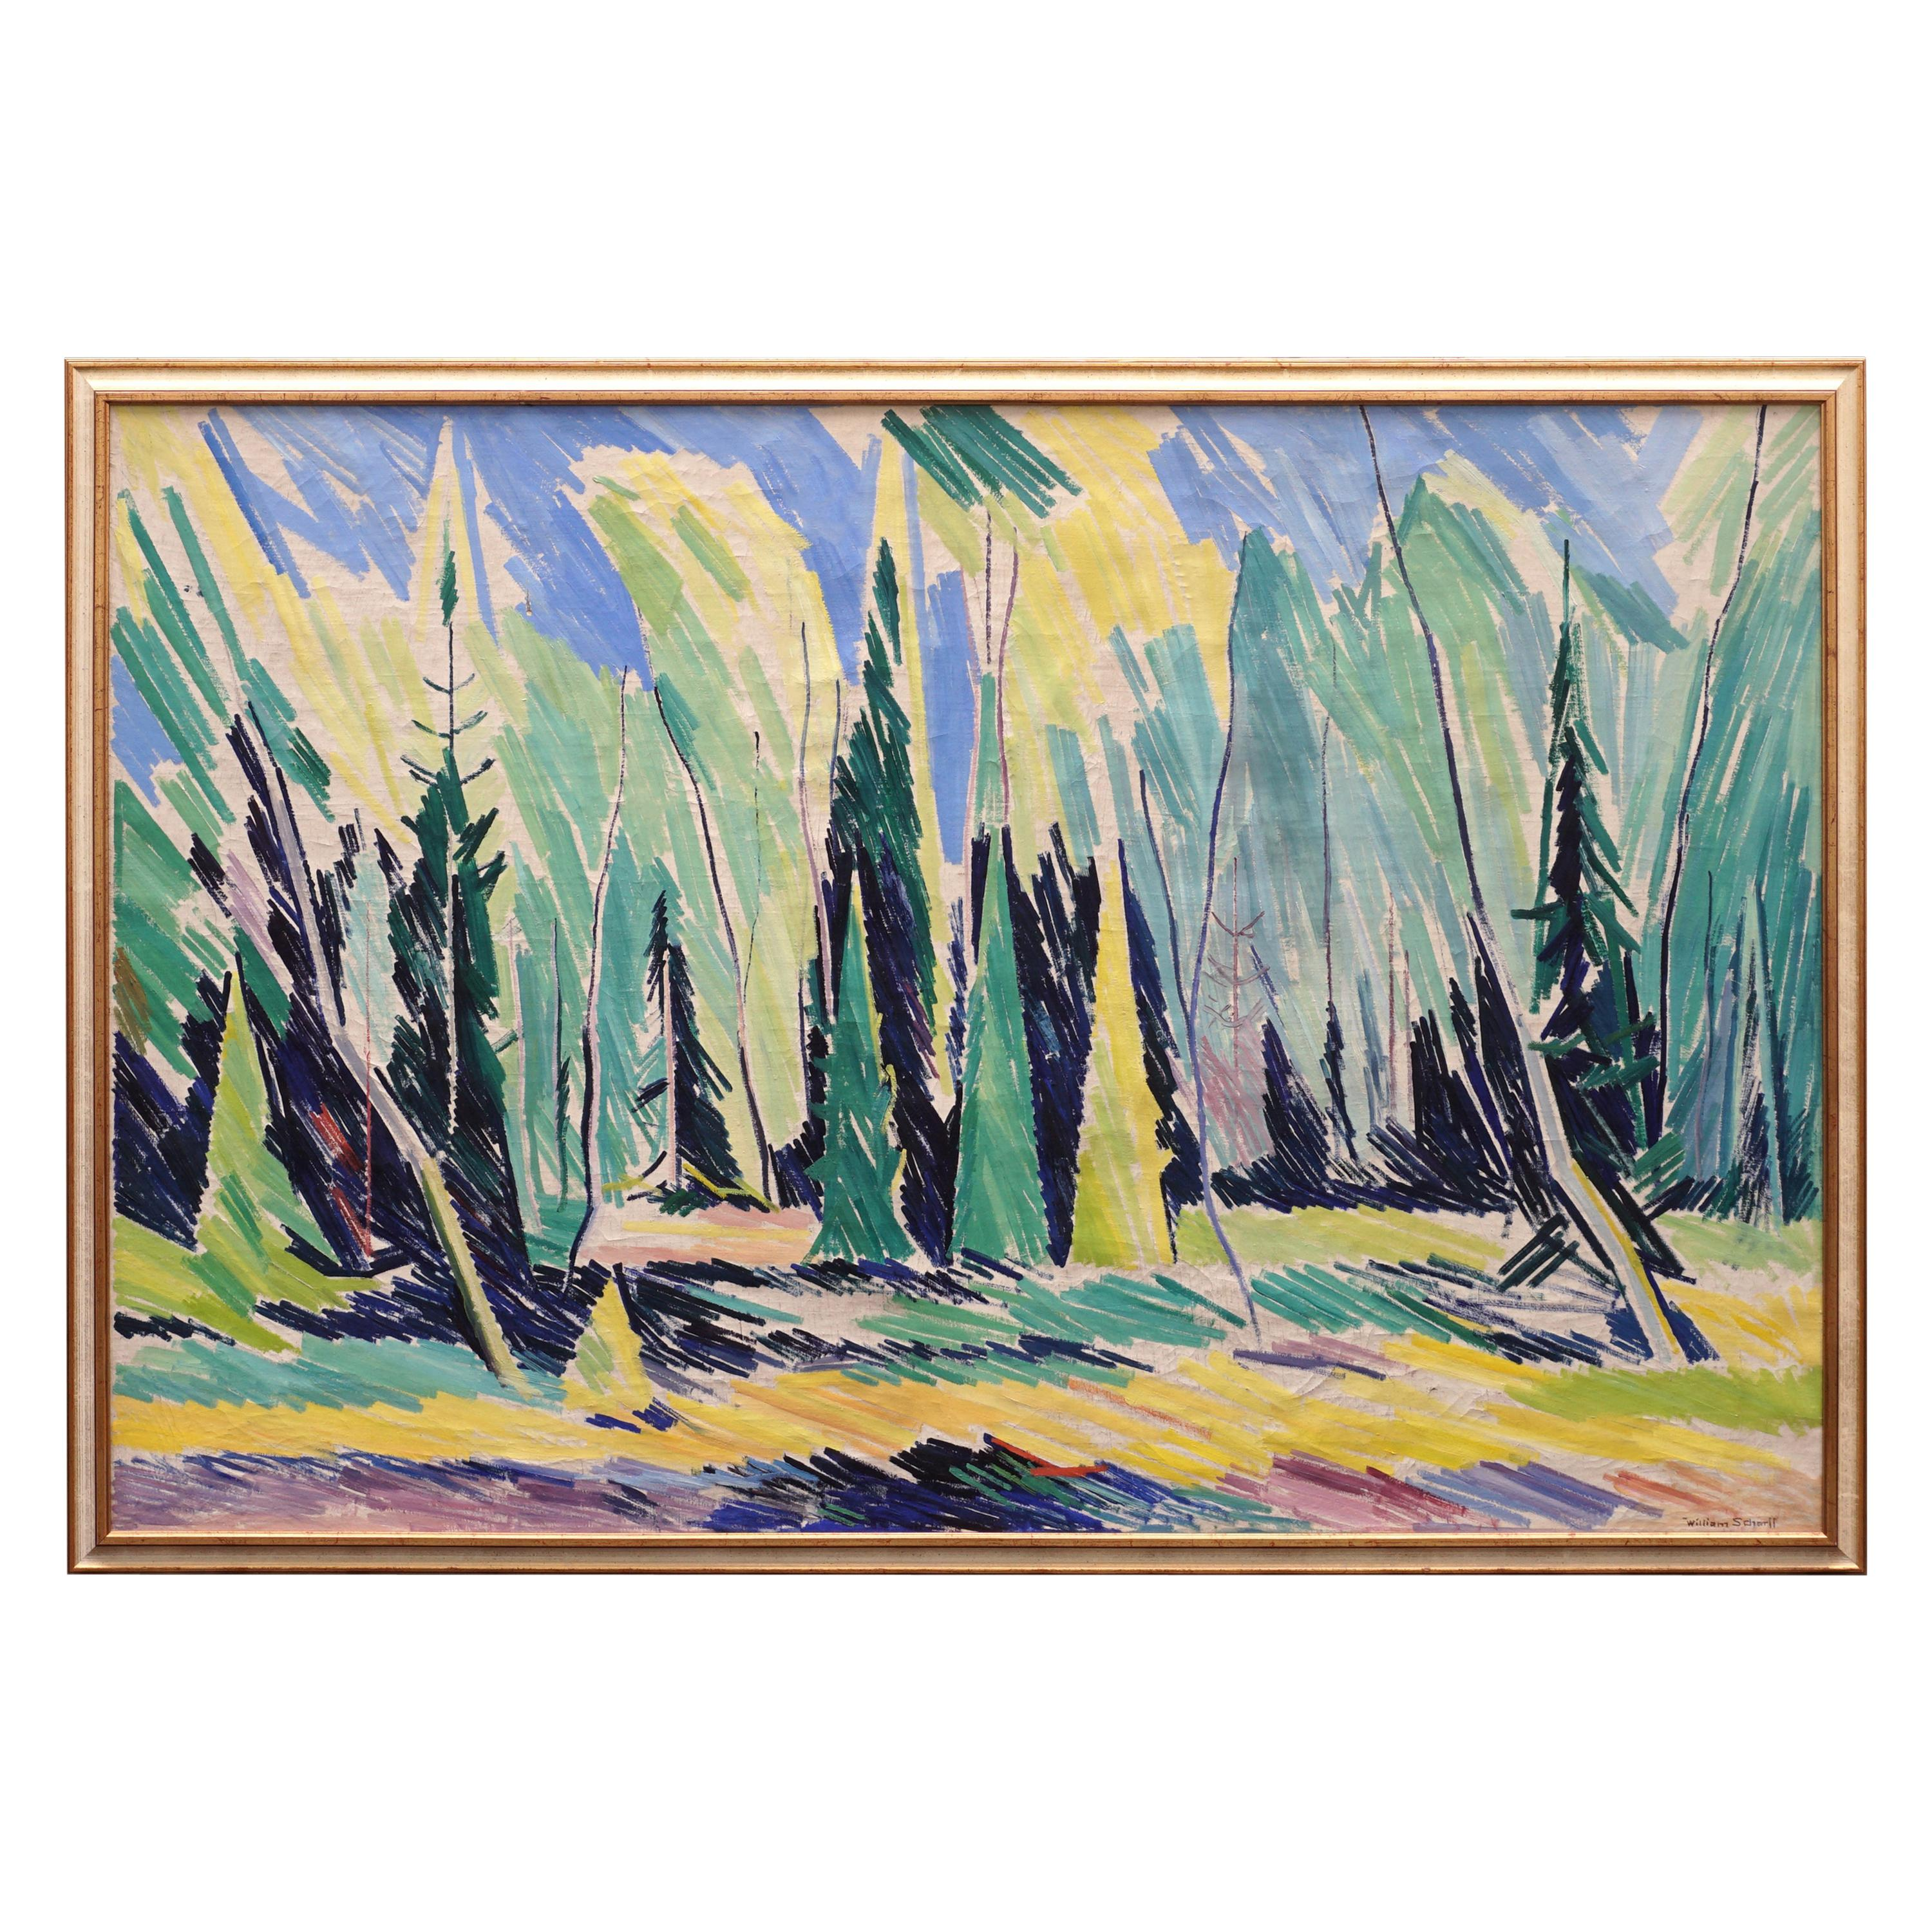 Large Danish Modern Painting Forest Scenery, Oil on Canvas, by William Scharff